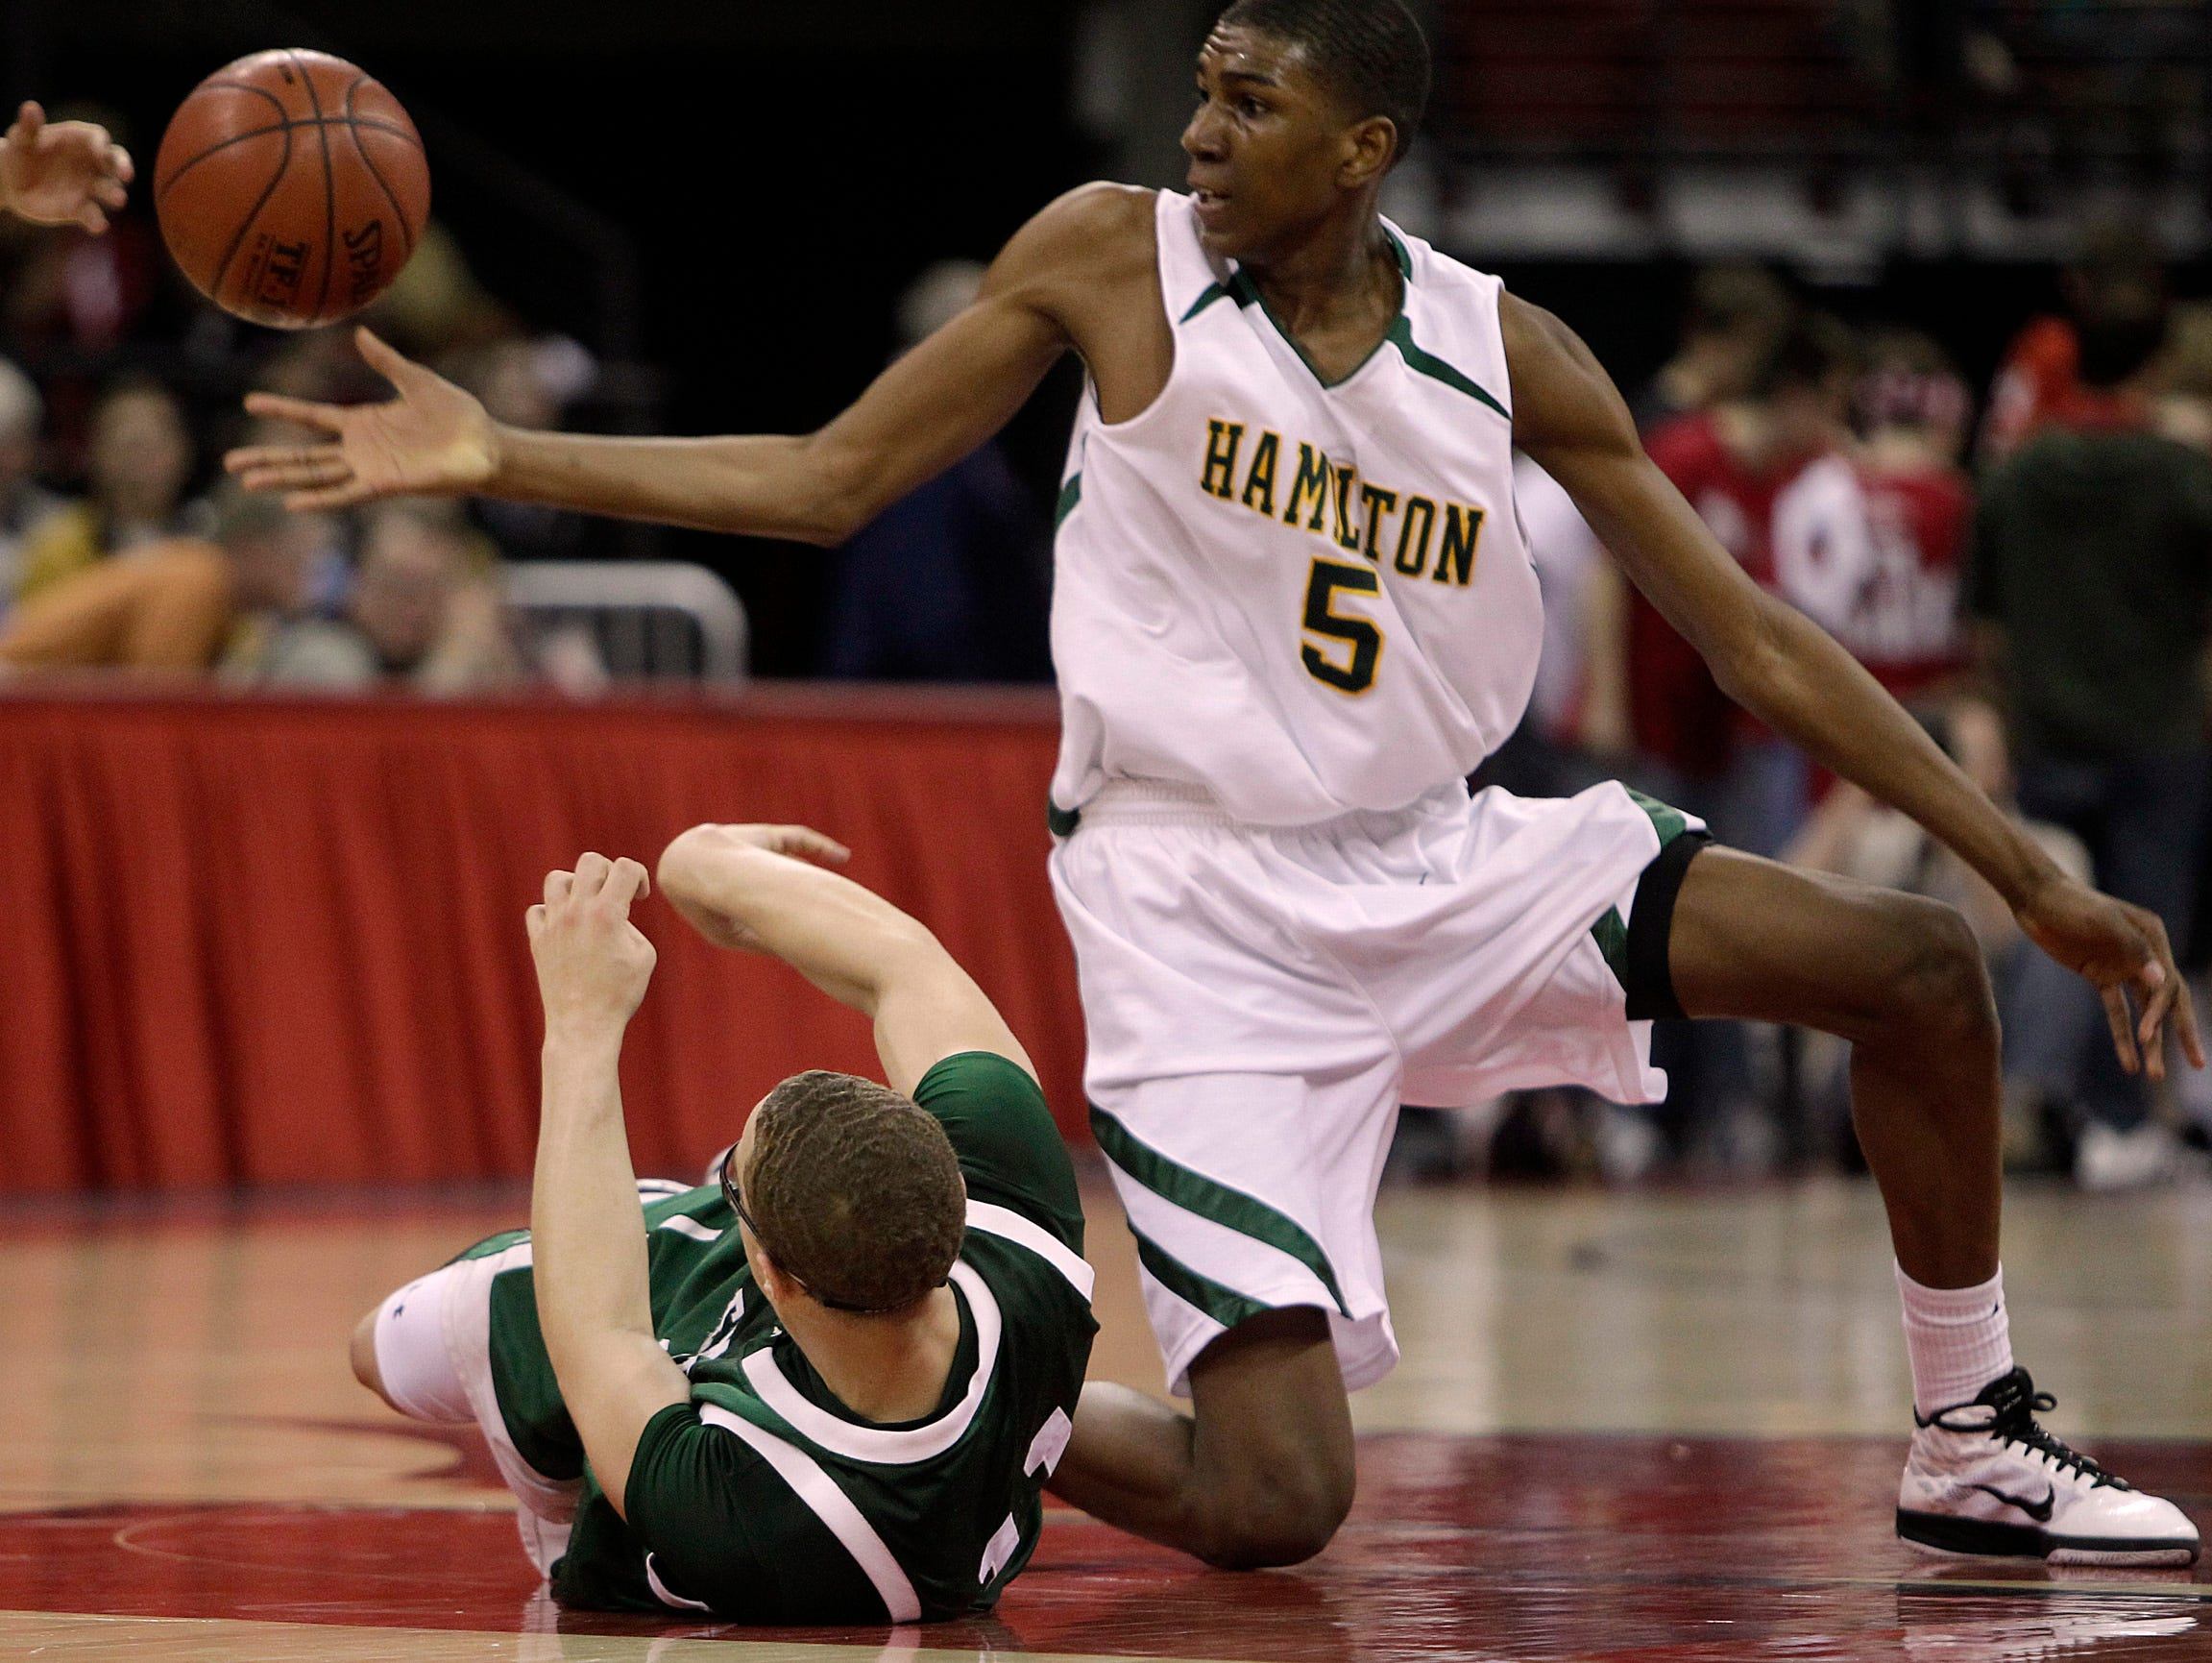 Milwaukee Hamilton's Kevon Looney and Madison Memorial's Miles Chamberlain fight for a loose ball during the WIAA state basketball tournament at the Kohl Center Friday, March 18, 2011.